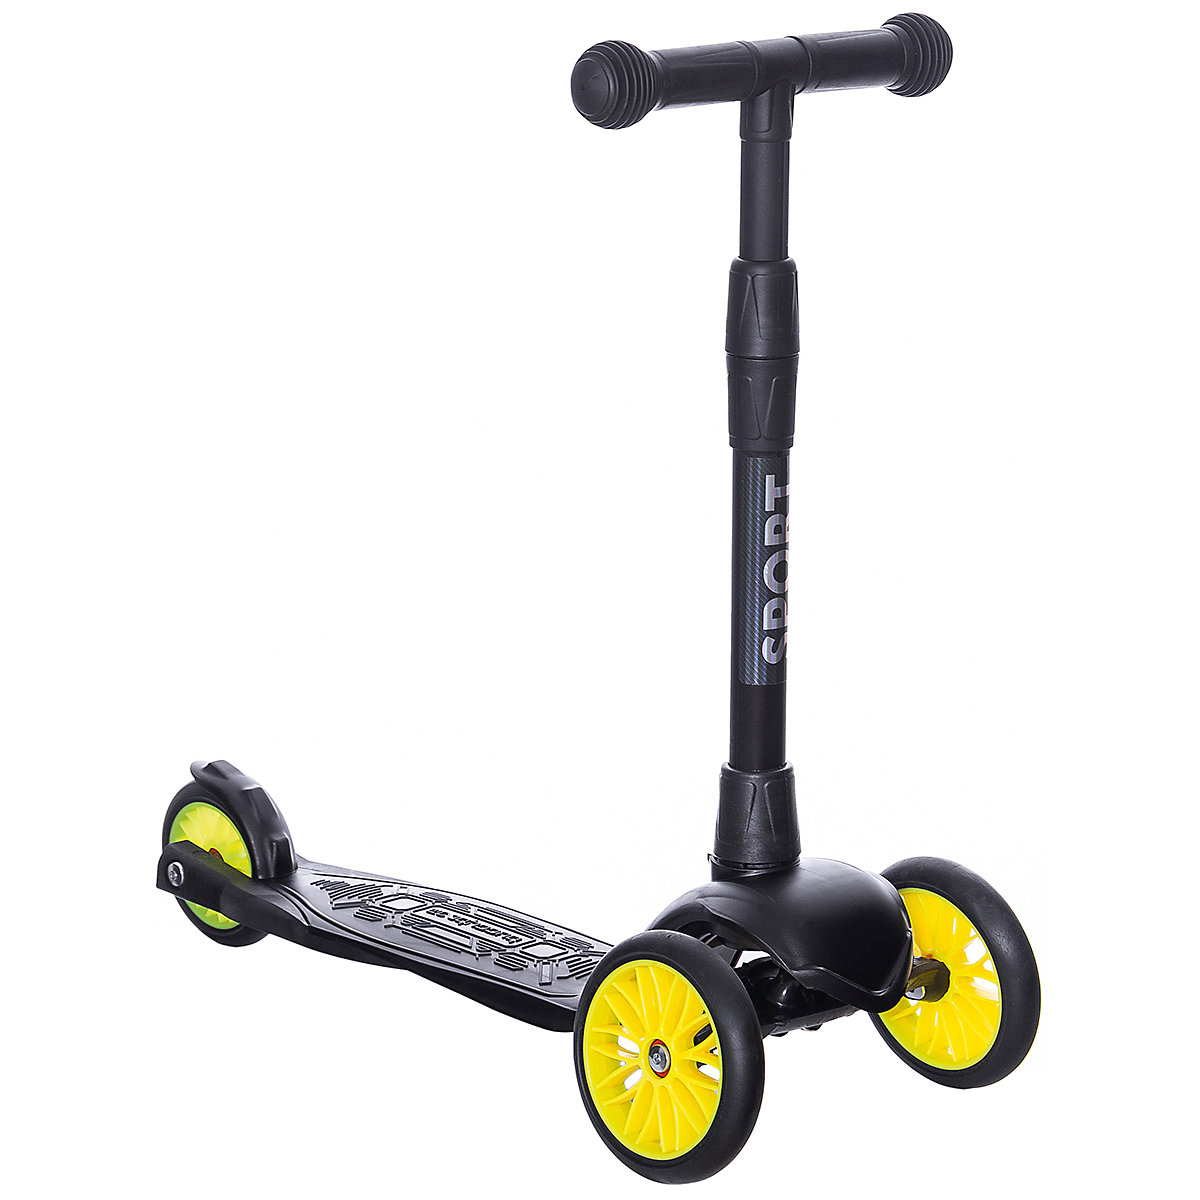 BUGGY BOOM Kick Scooters,Foot Scooters 11402883 scooter three-wheeled for children boys and girls